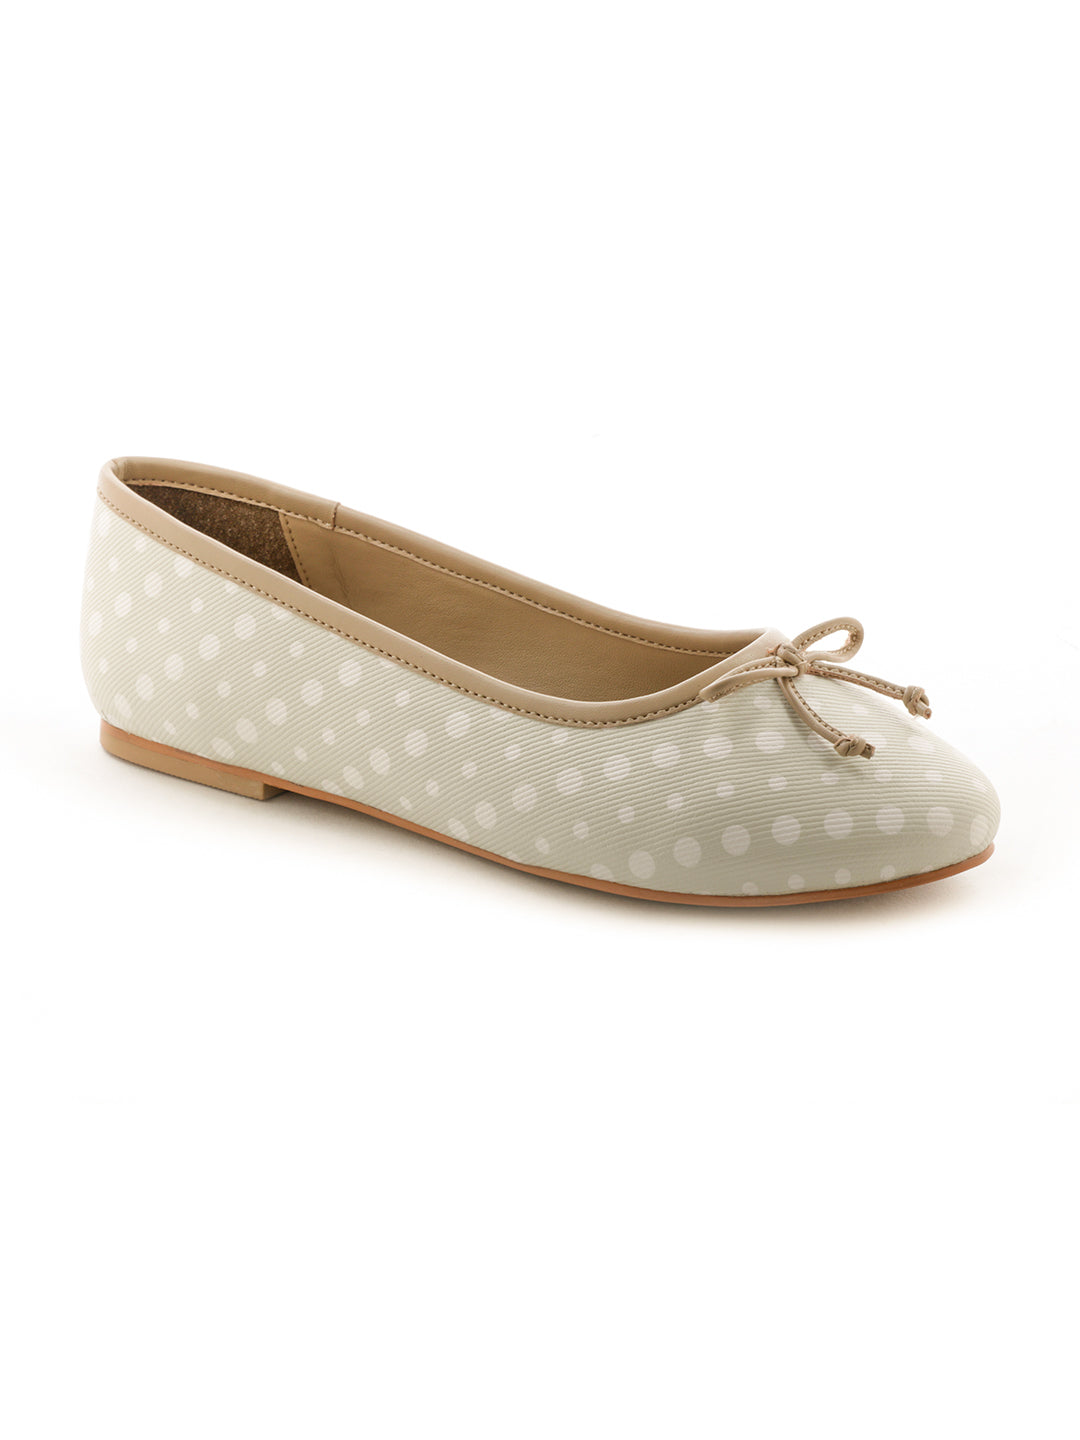 Womens Polka Dot Beige Ballerinas - London Rag India